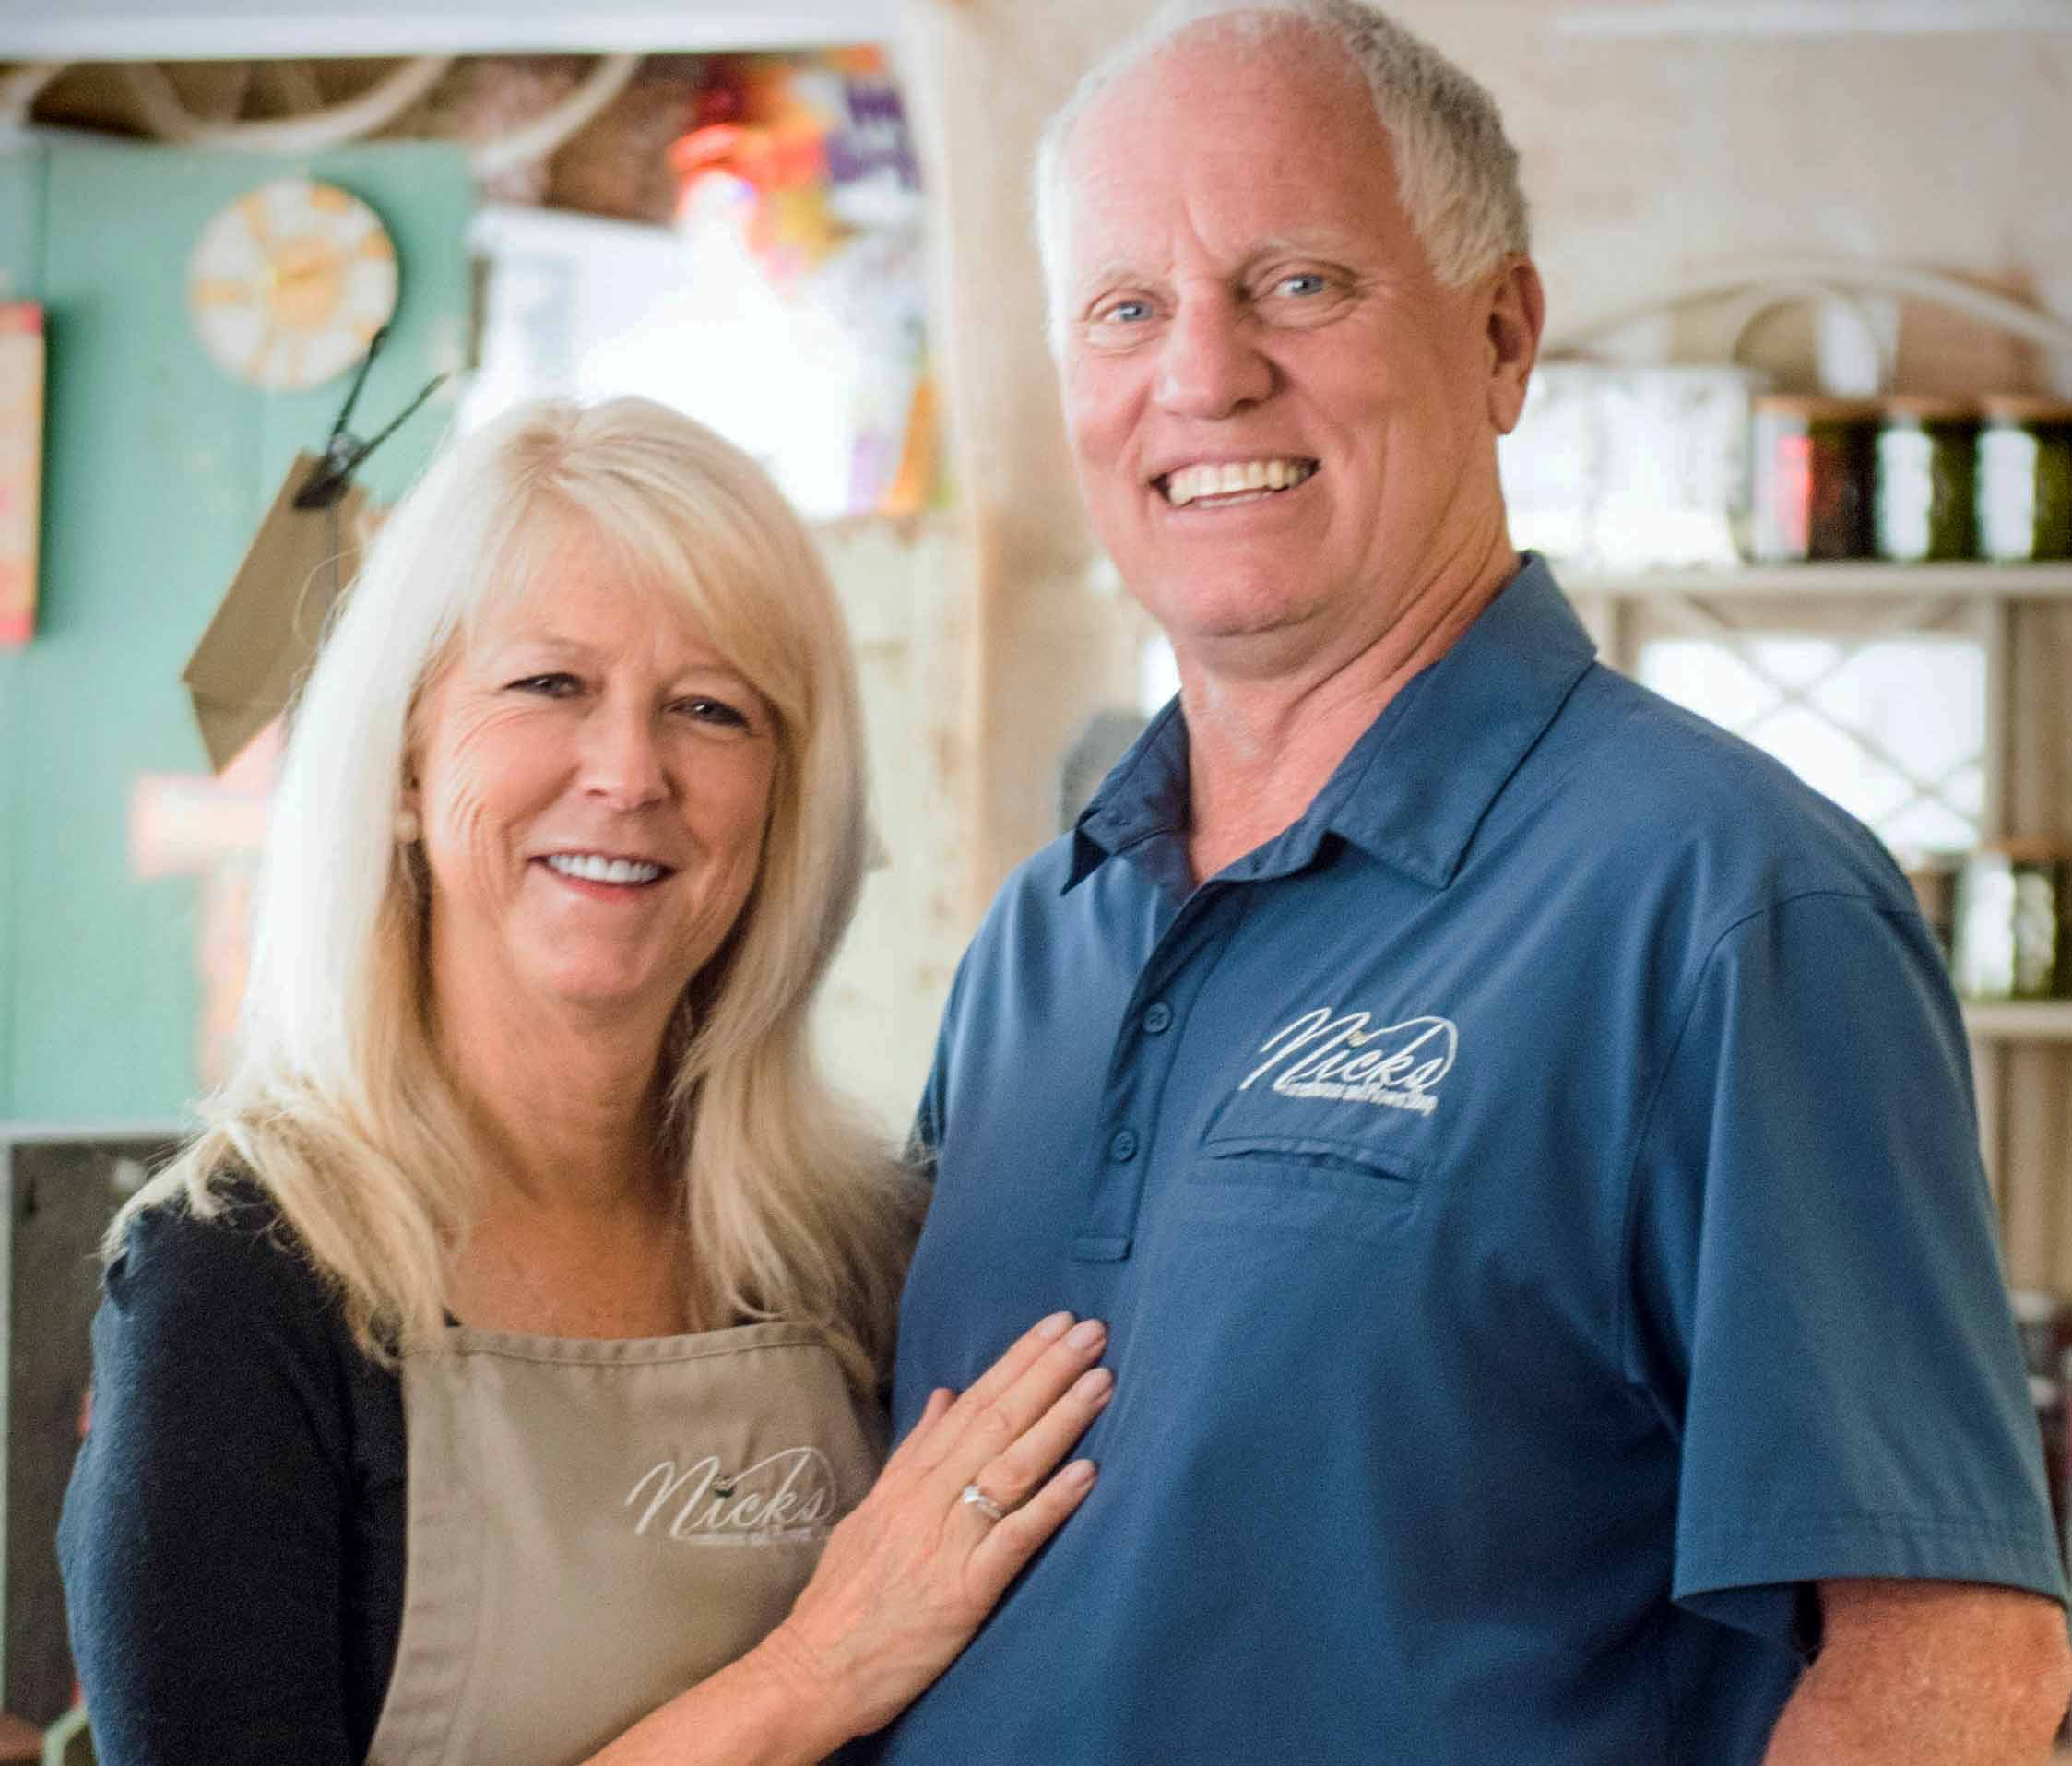 Nick & Lynn, Owners and Designers